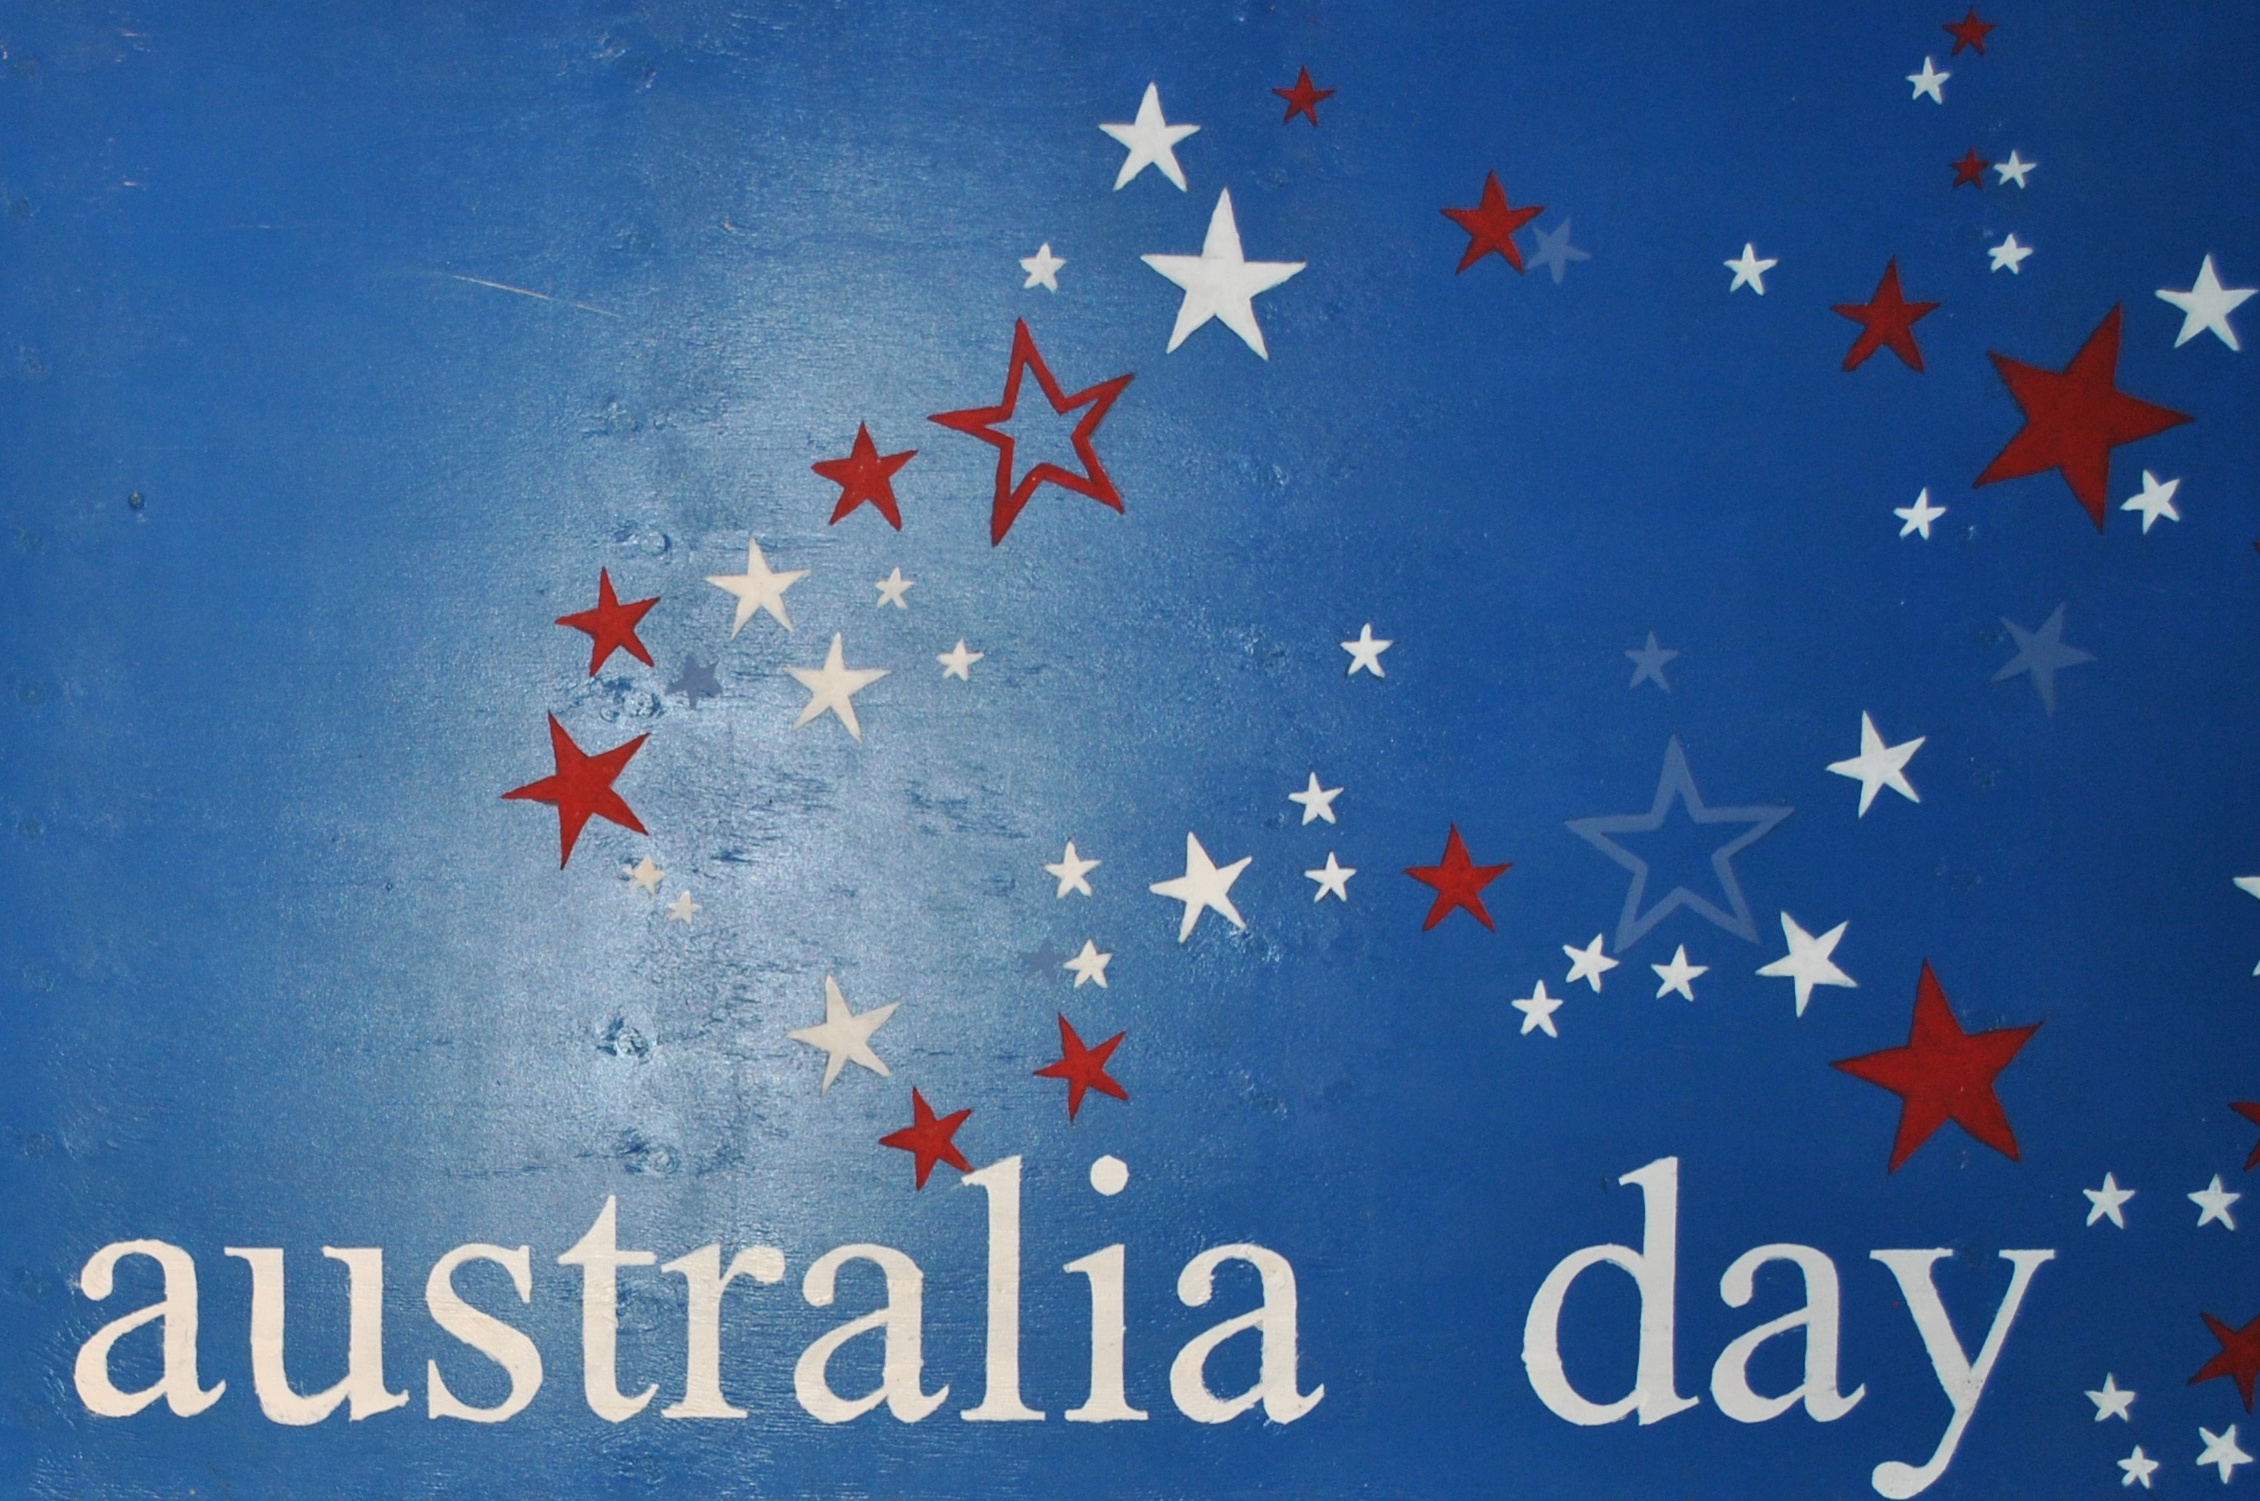 15 Australia Day HD Wallpapers Background Images 2260x1501